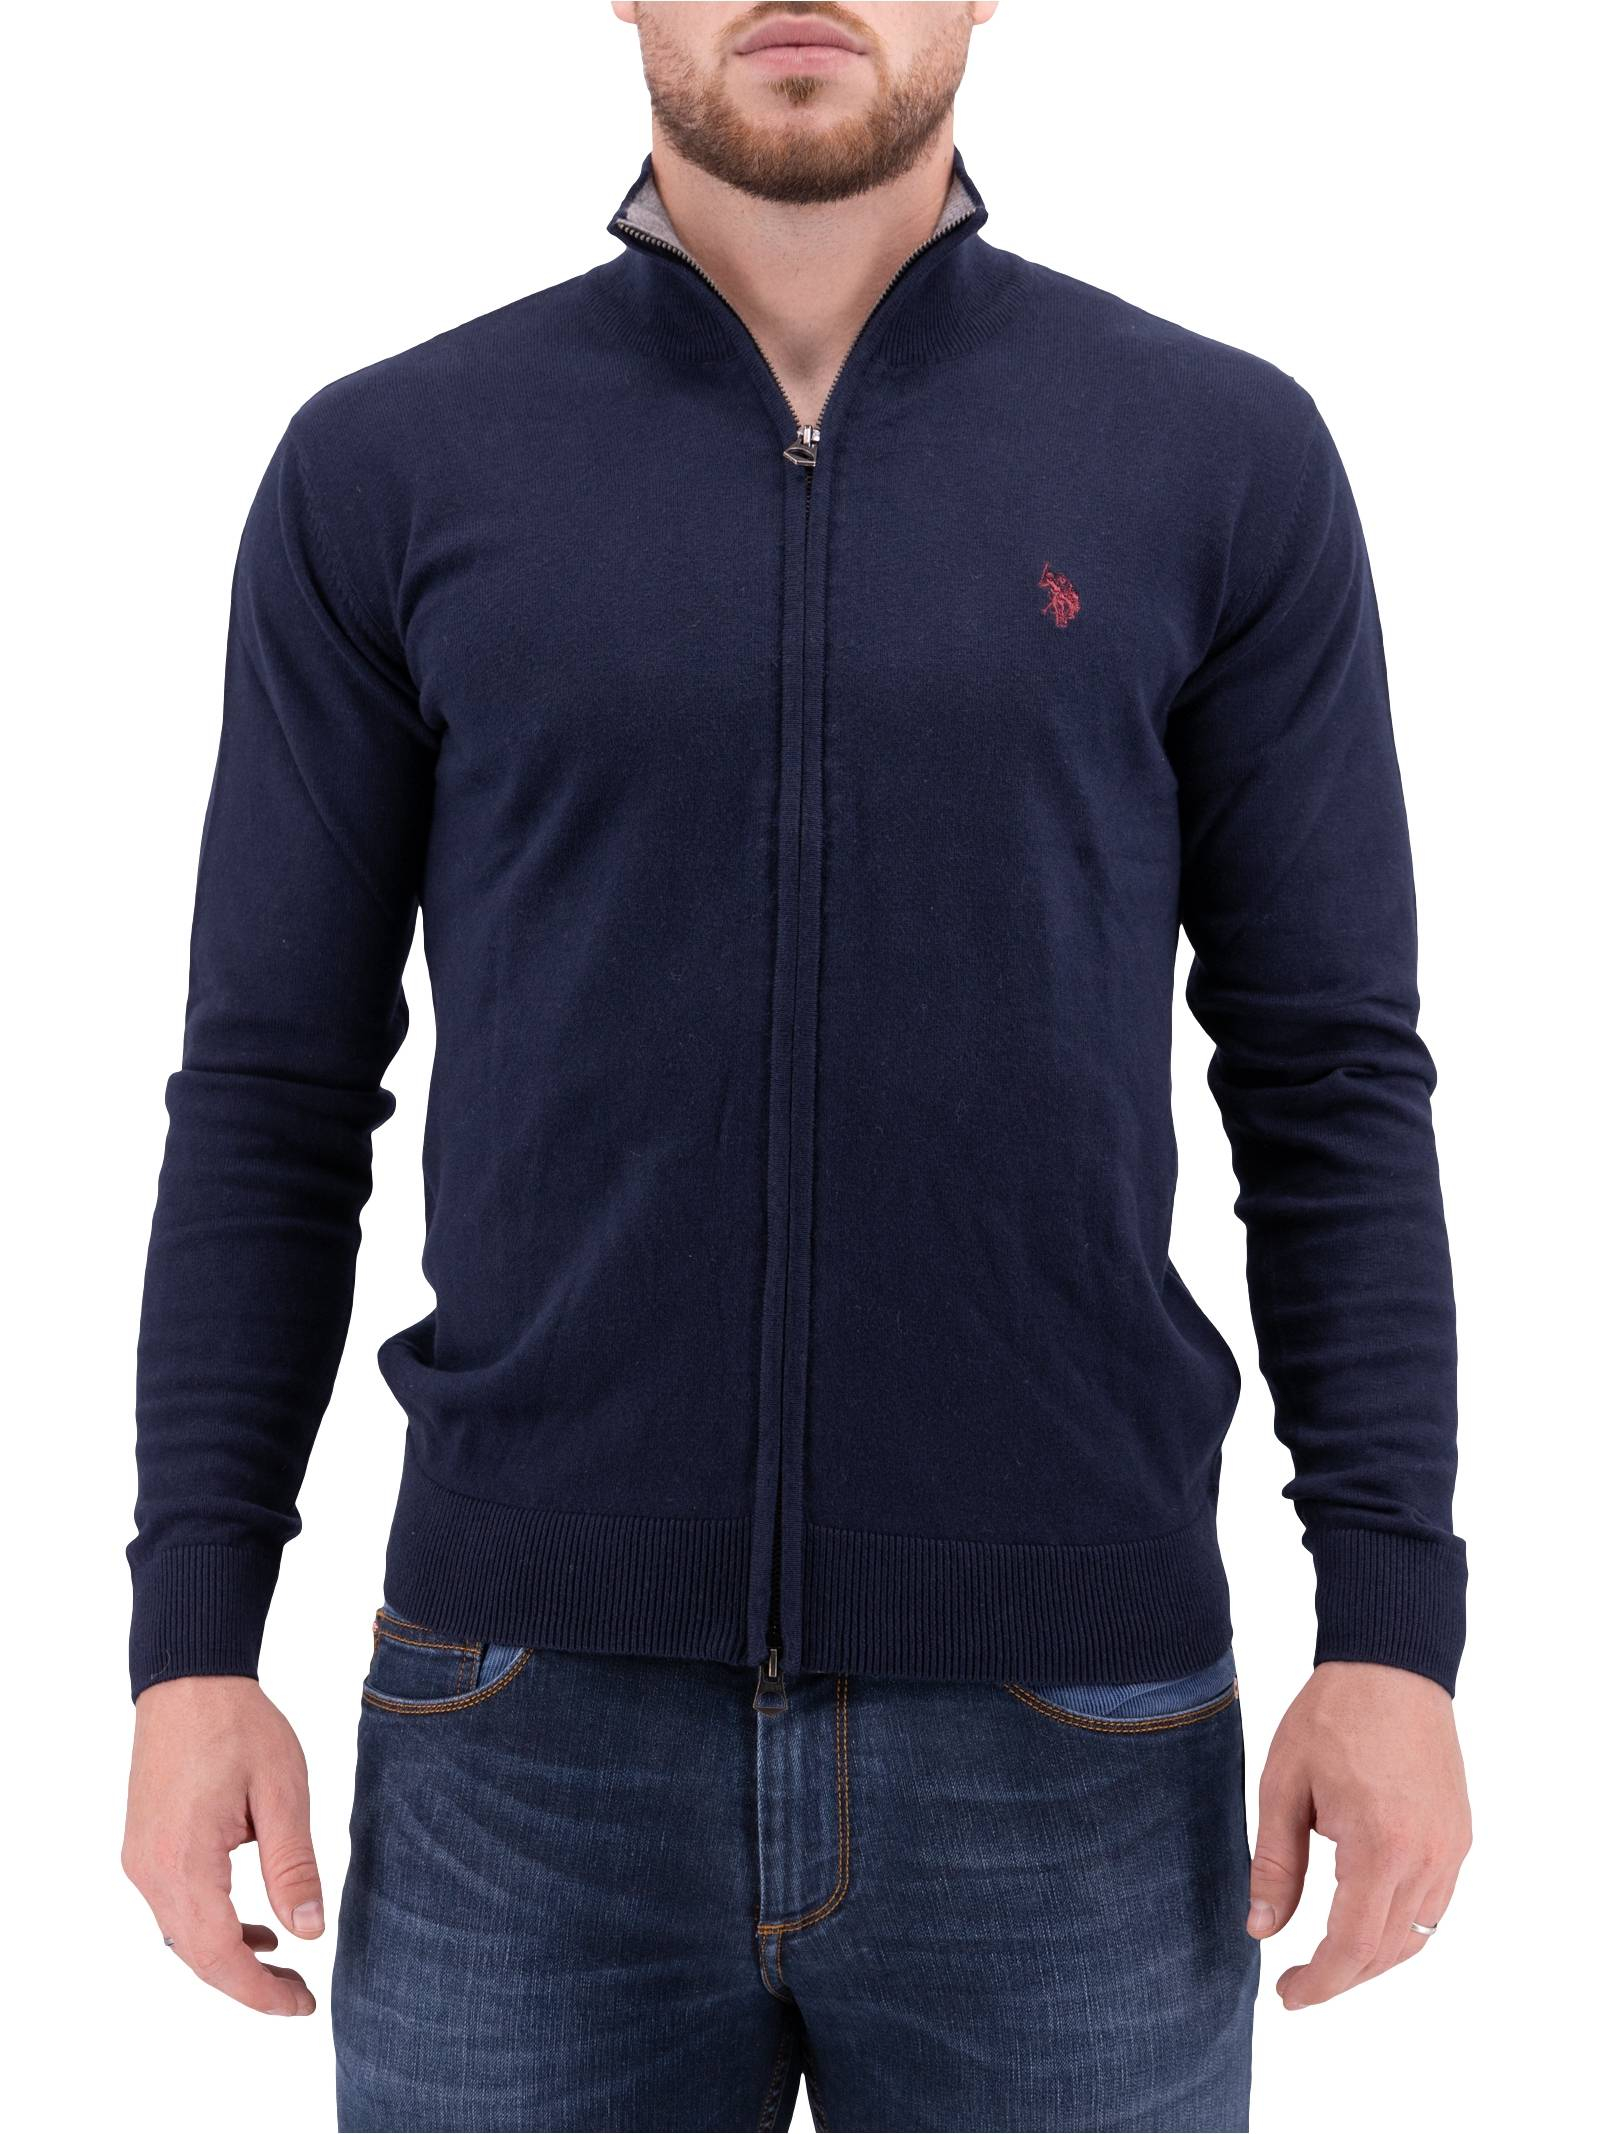 U.S. Polo Assin. Cardigan 59239 48847